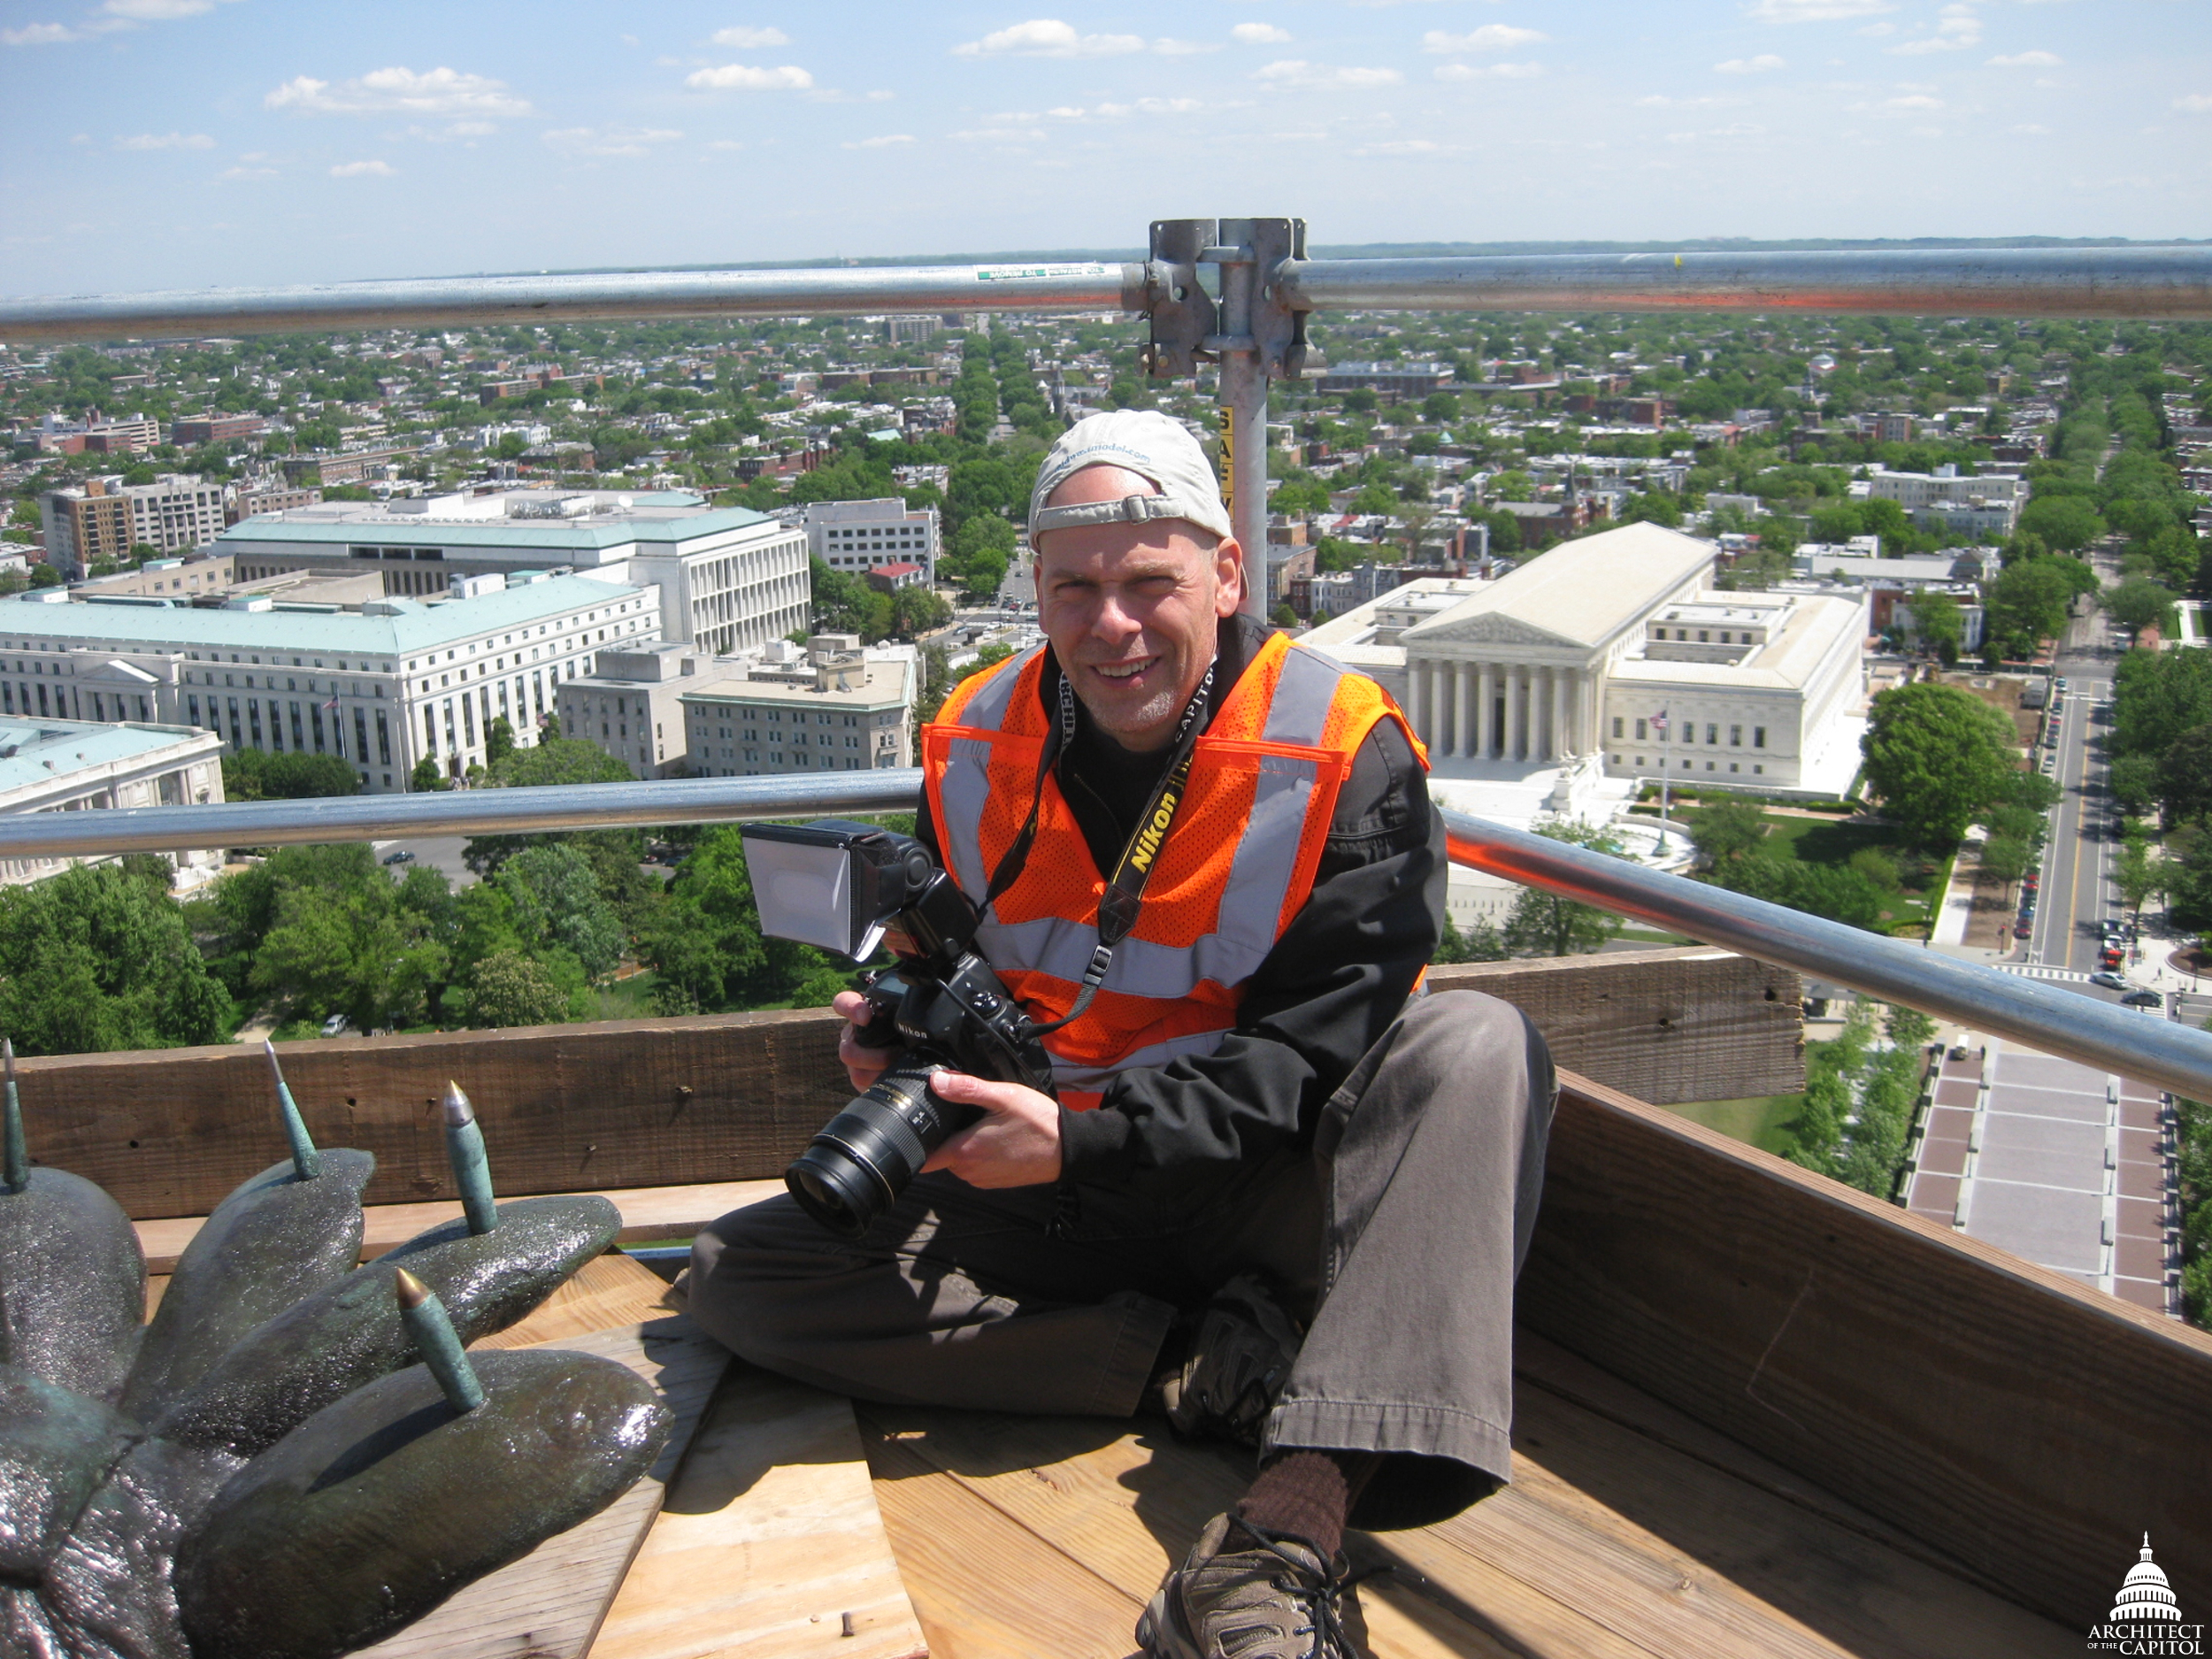 Photographs taken by Badal provide a visual record of the repair work on the U.S. Capitol Dome.